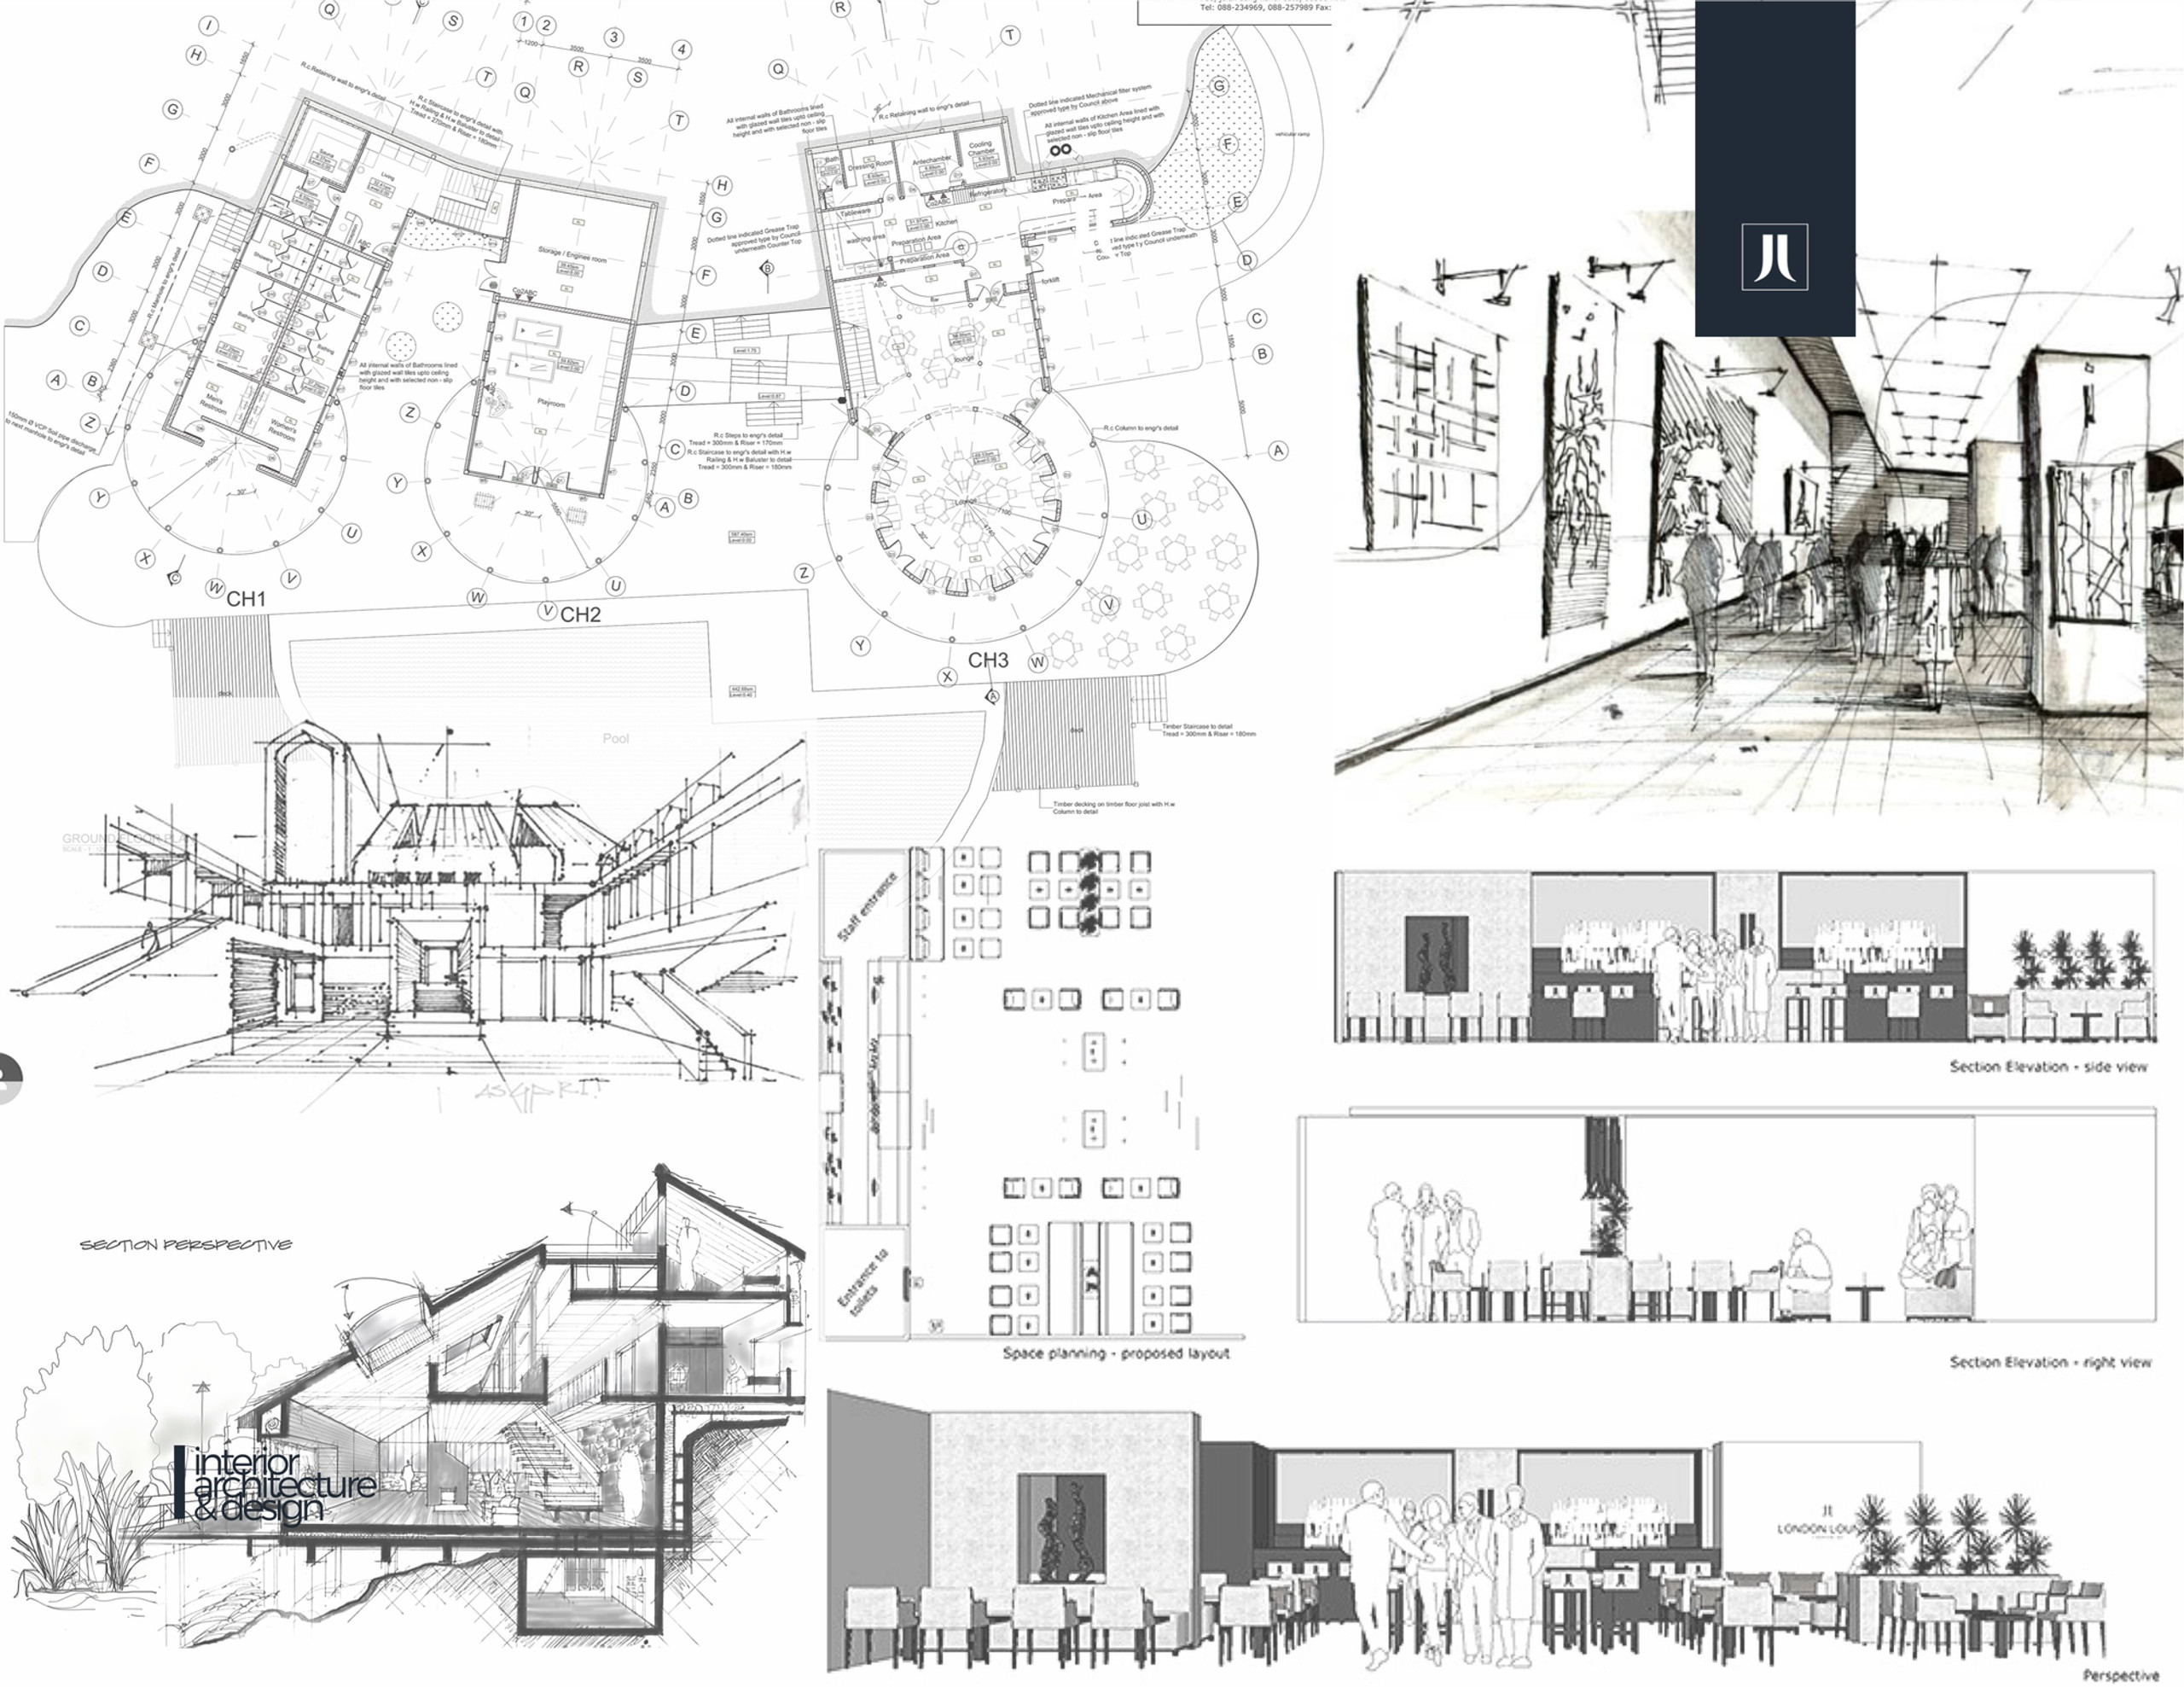 Visualisation, drawings and sketches | interior design process